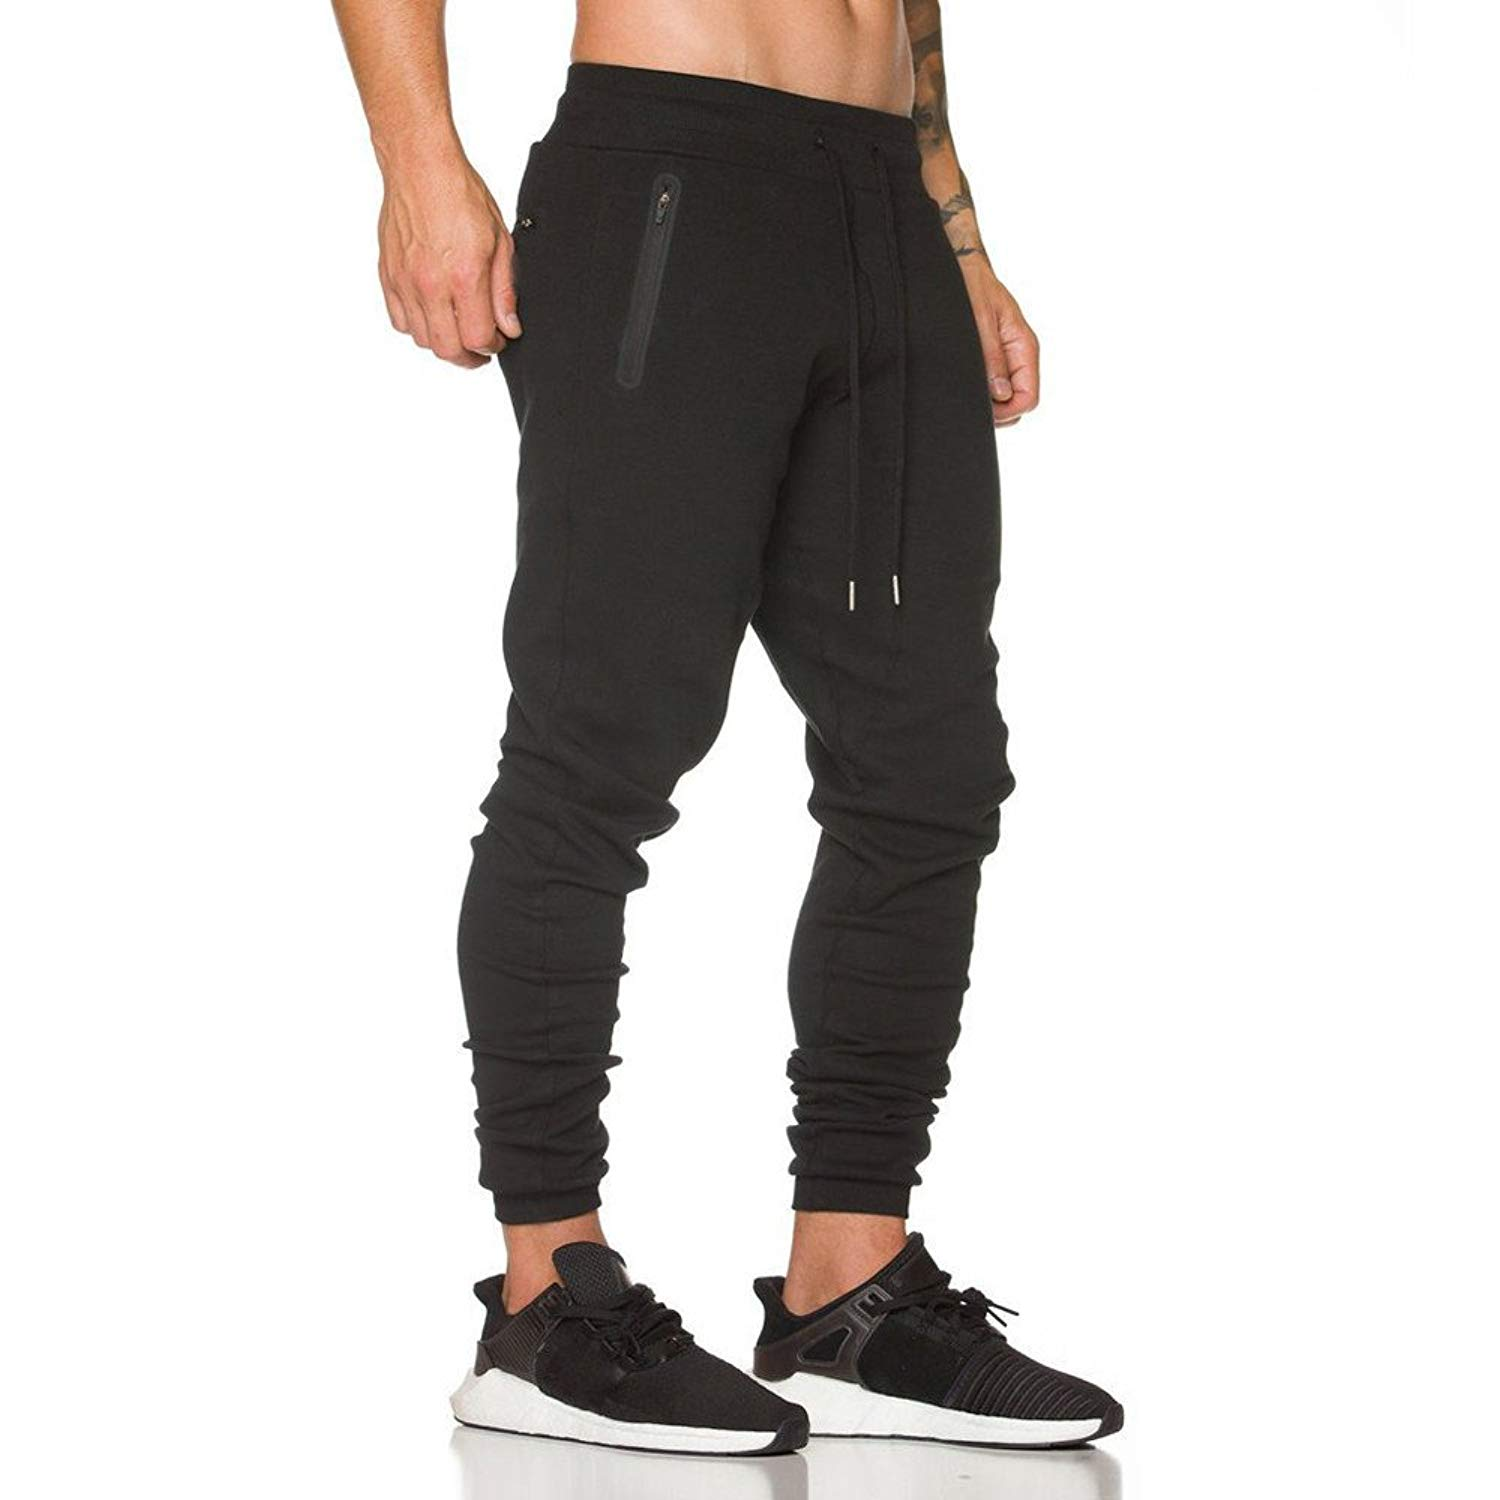 Morecome Men Pant Men Sweatpants Trousers,Casual Elastic Climbing Baggy Jogging Pants for Men